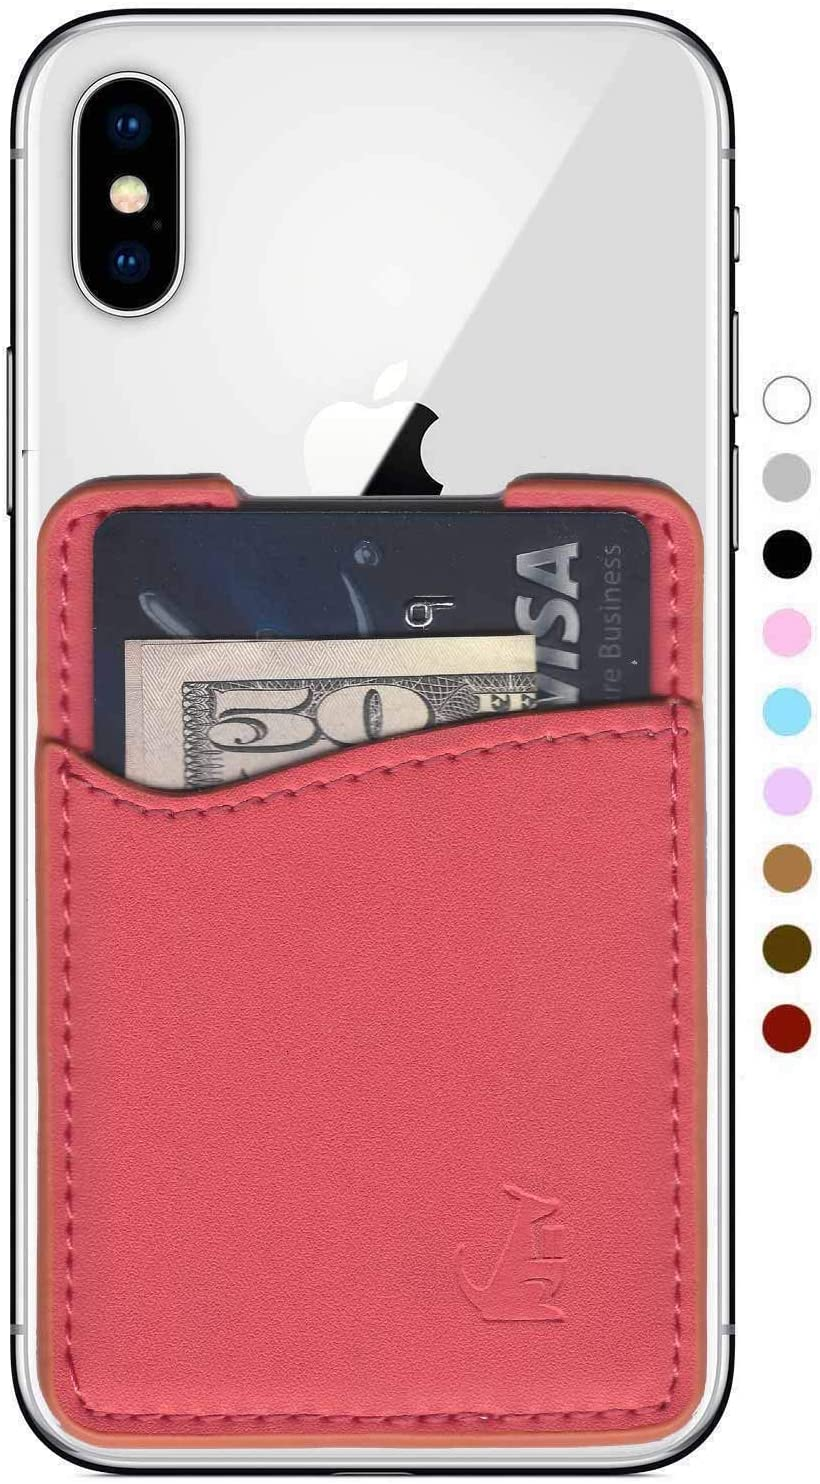 WALLAROO Premium Leather Phone Card Holder Stick On Wallet for iPhone and Android Smartphones (Coral Leather)